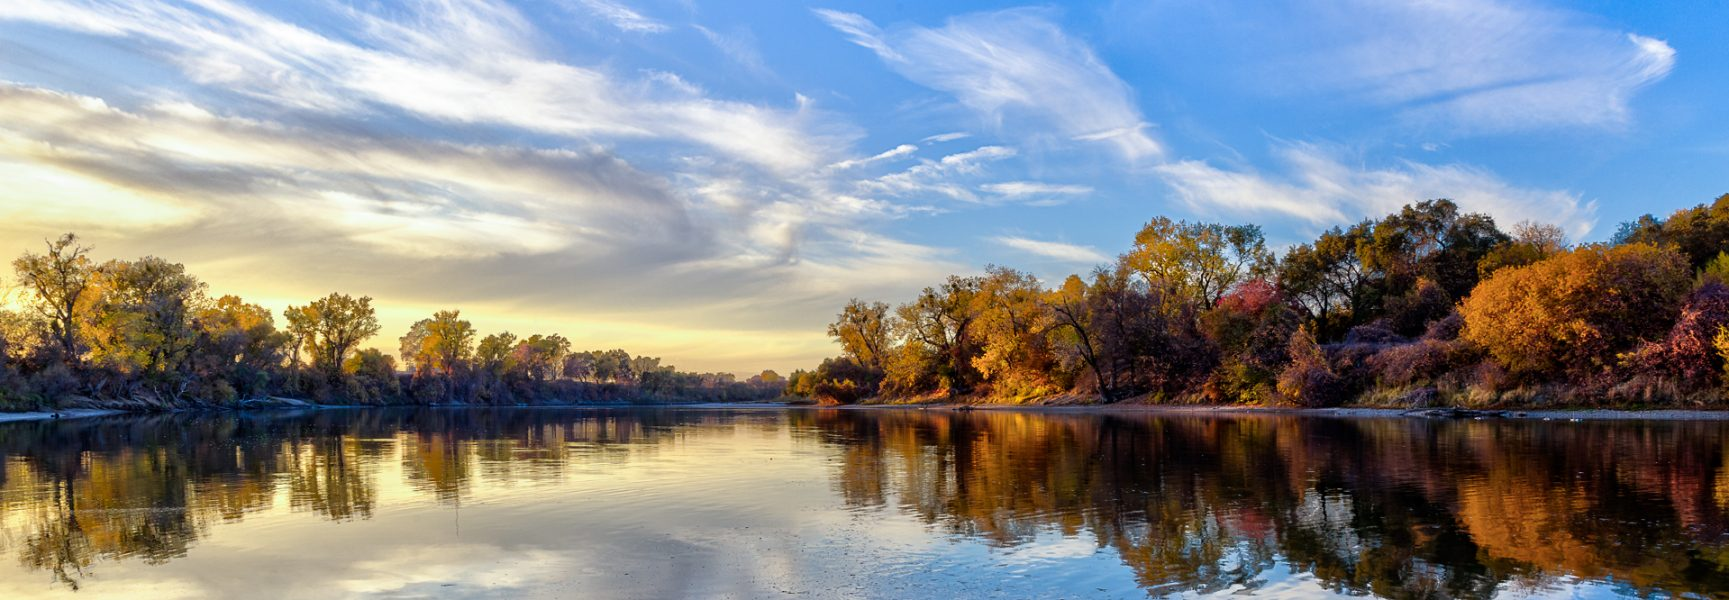 Sunset on the American River - Doug Arnold